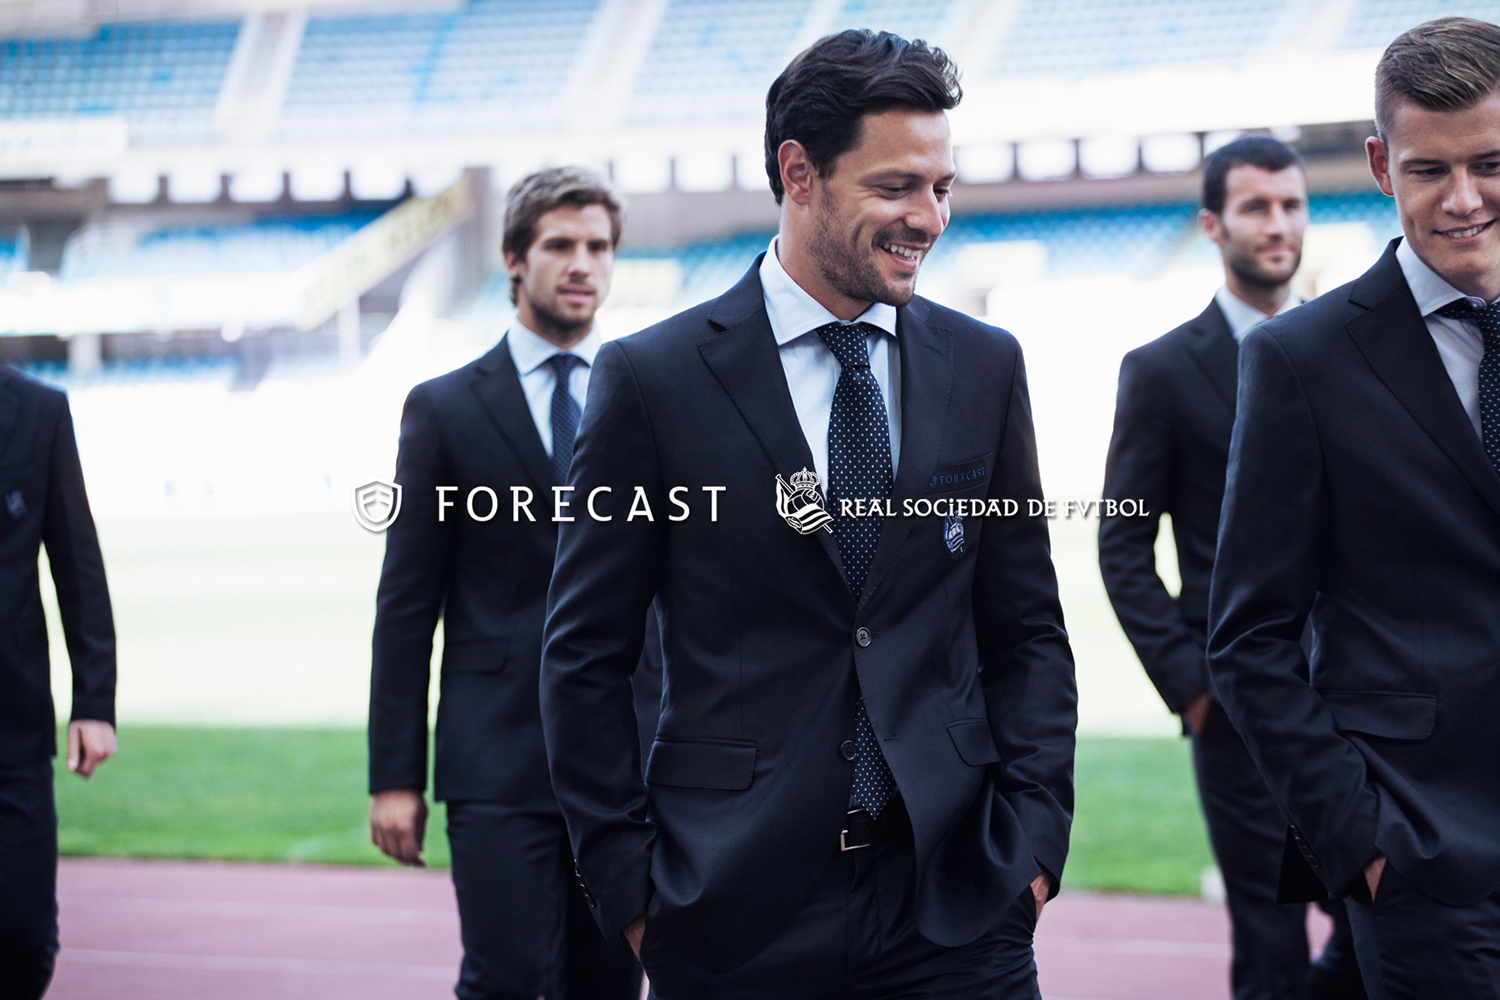 Forecast – Real Sociedad